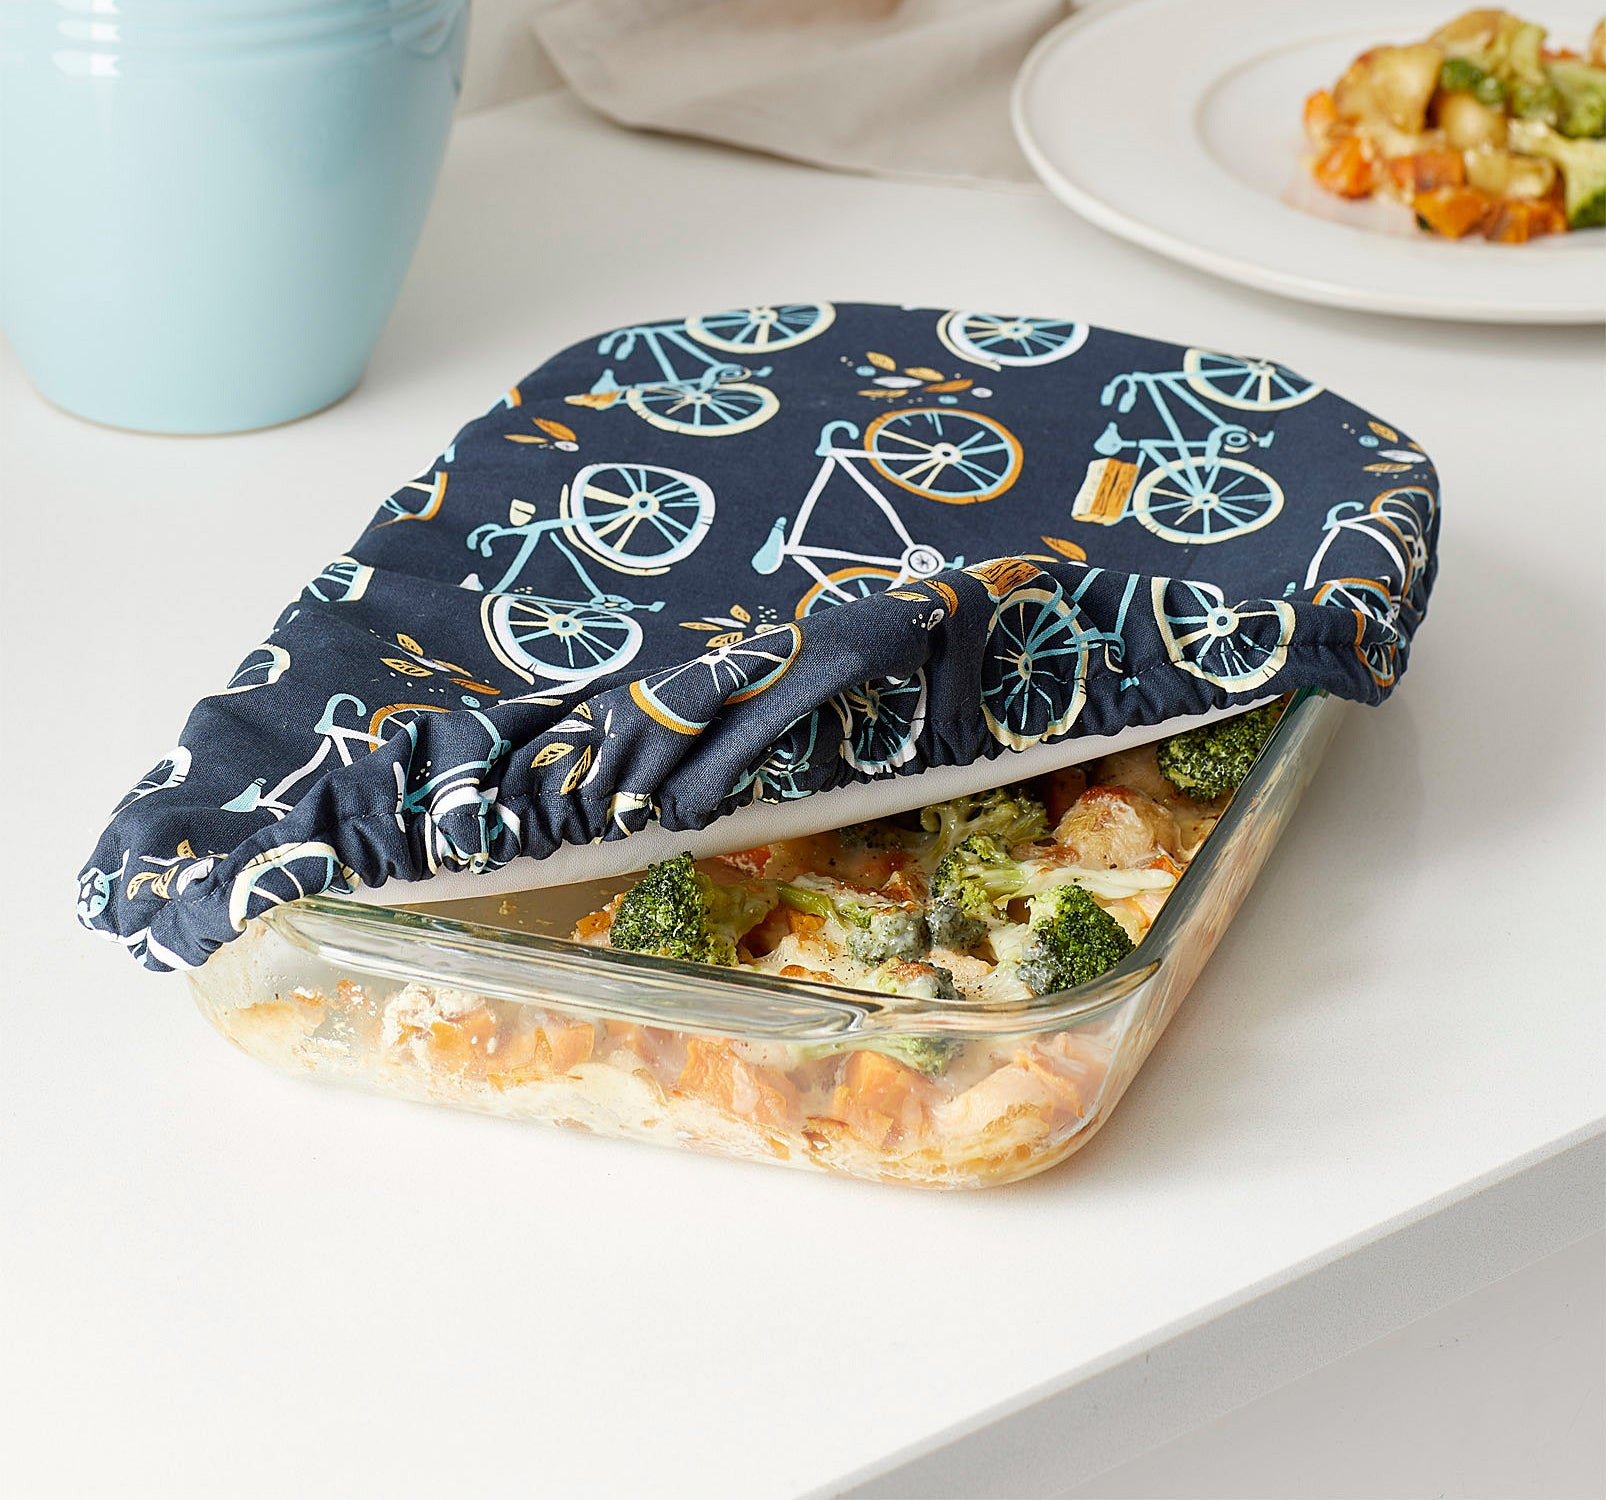 A glass dish pan with a fabric cover over it